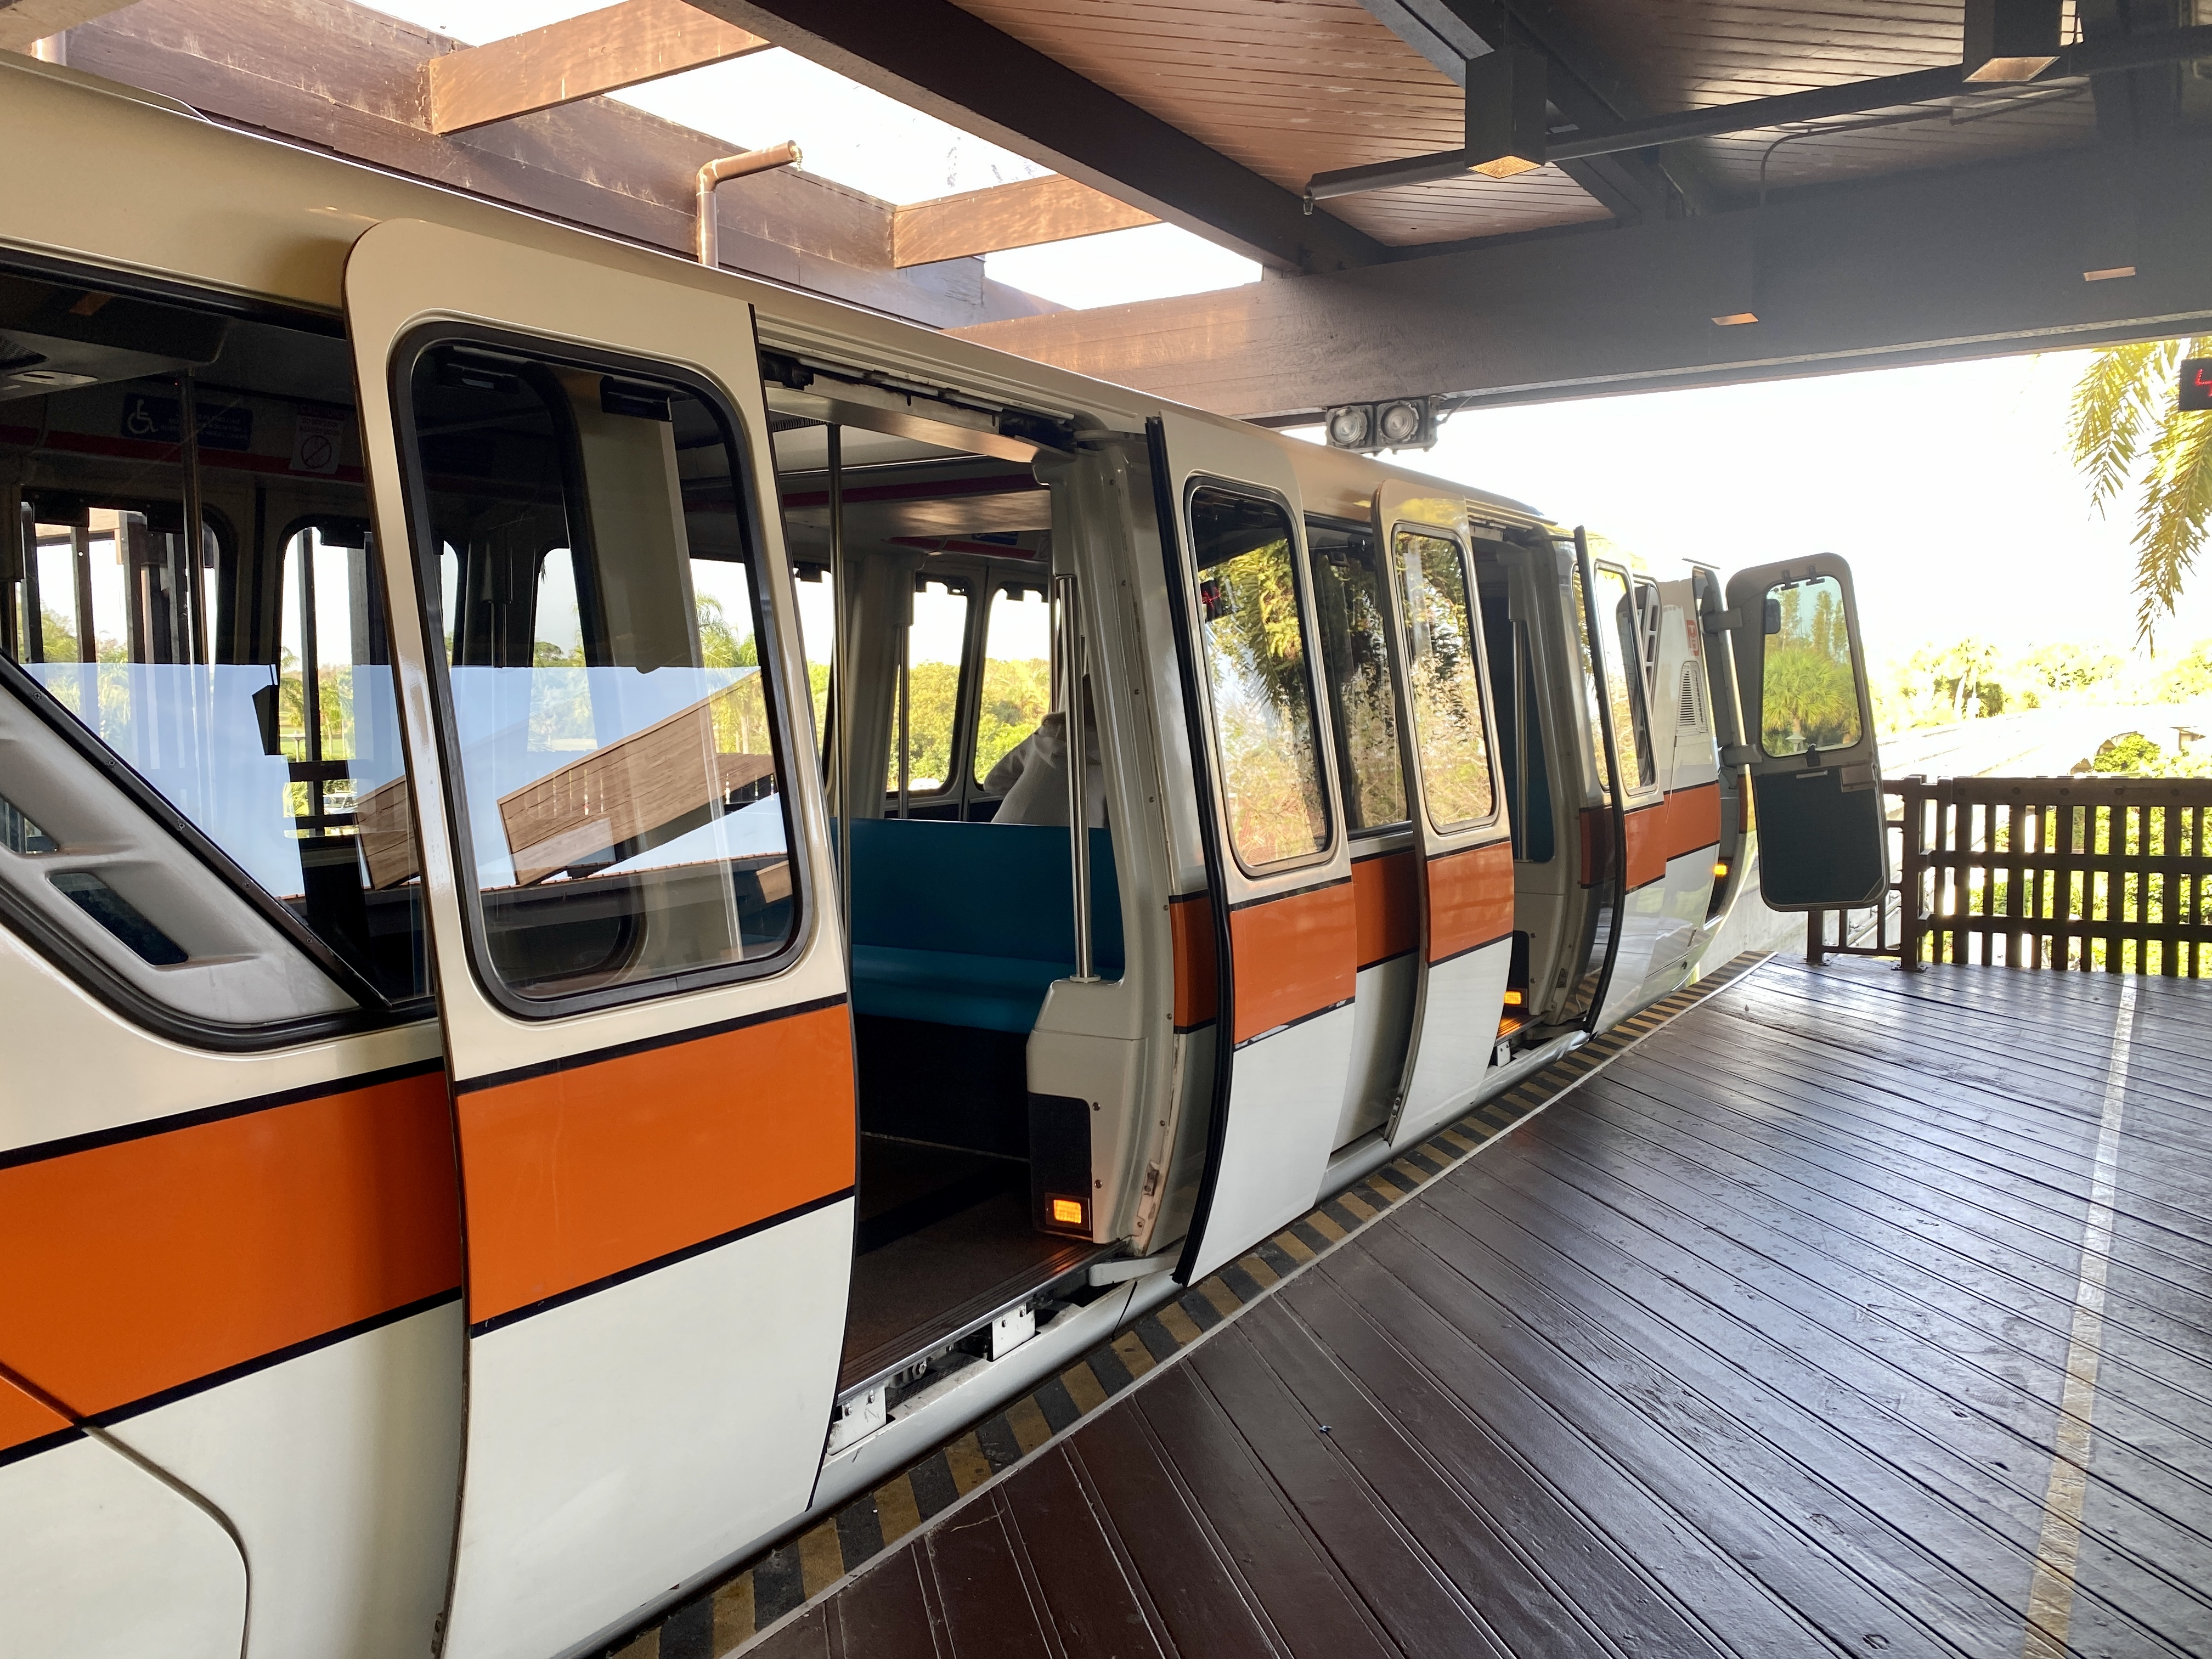 Monorail open